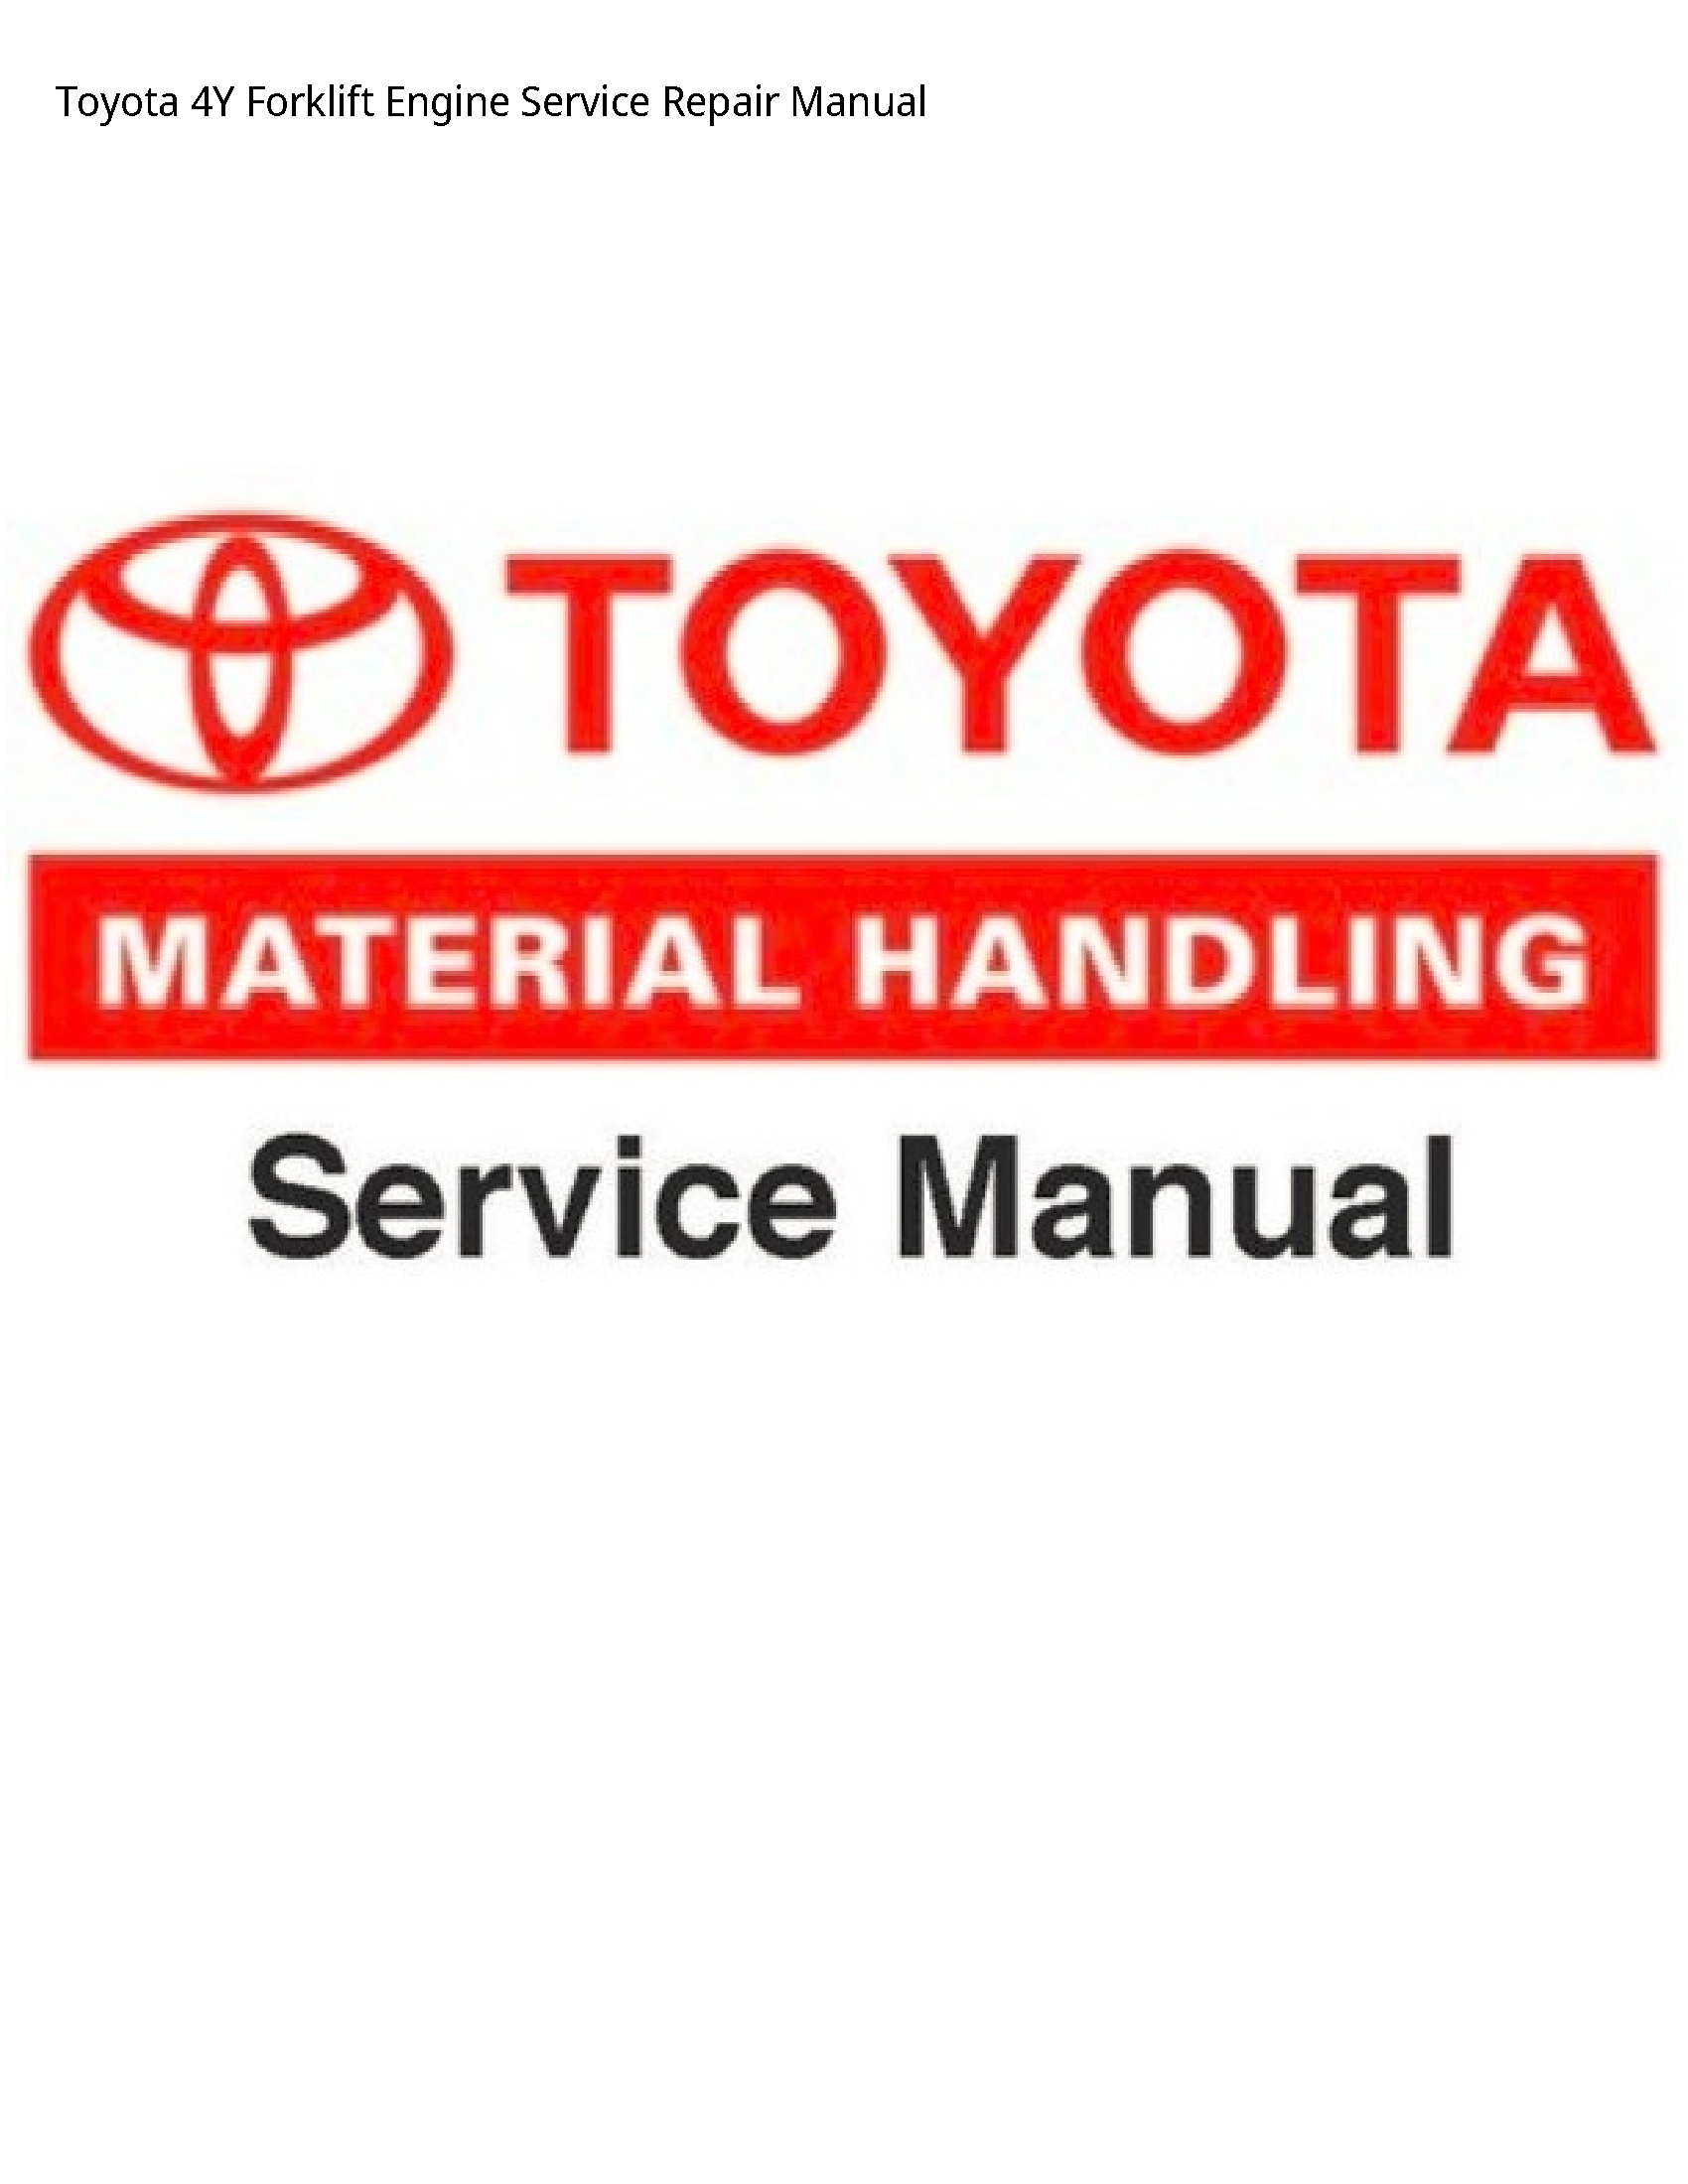 Toyota 4Y Forklift Engine manual